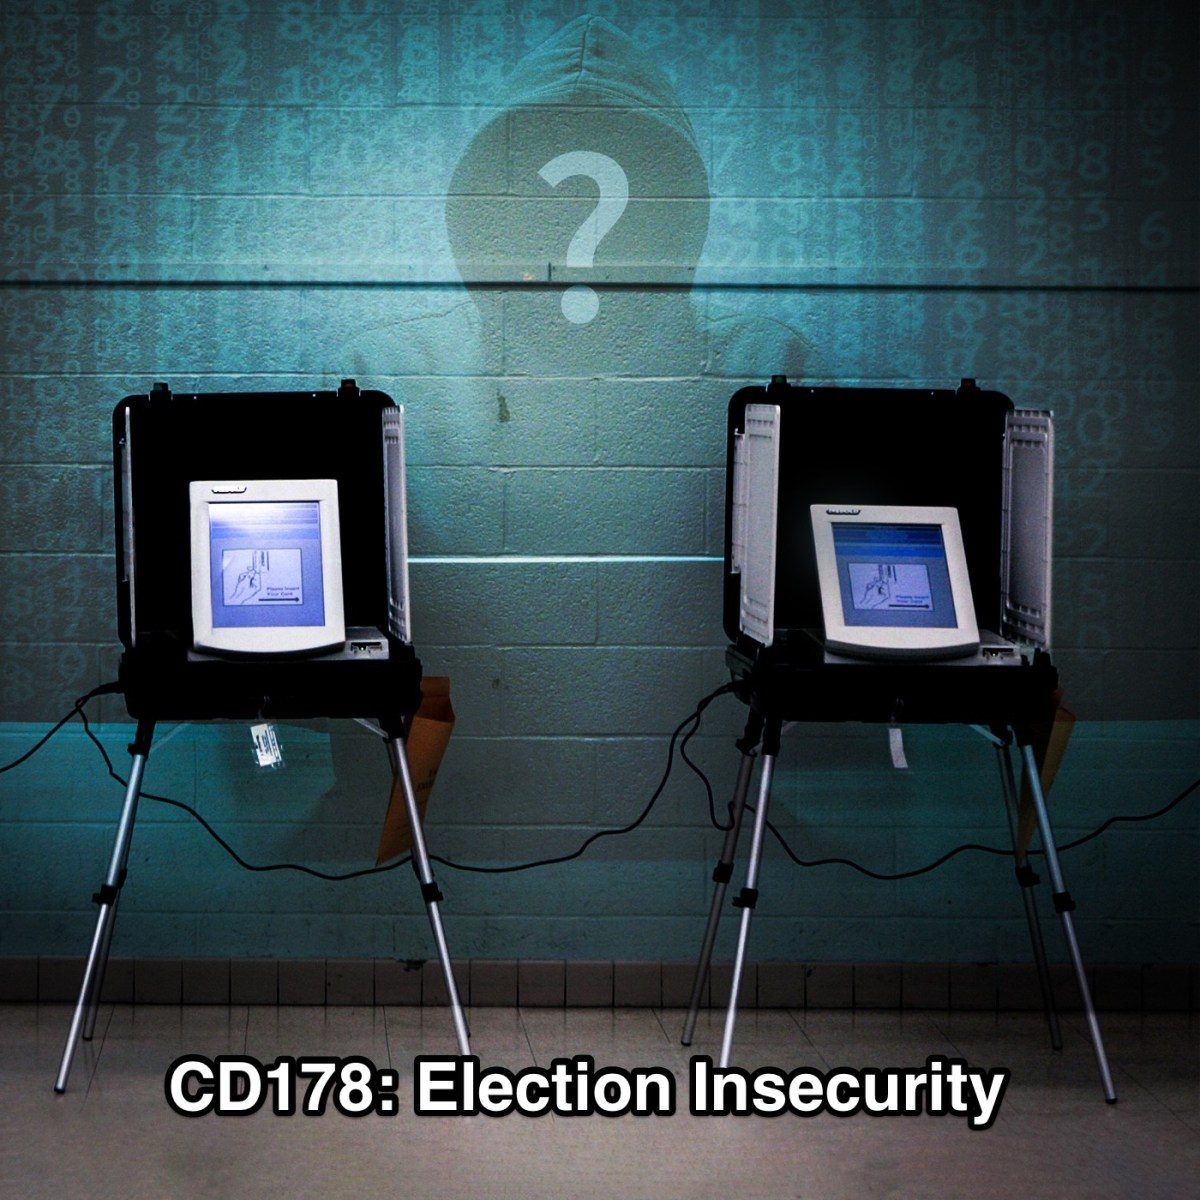 CD178: Election Insecurity